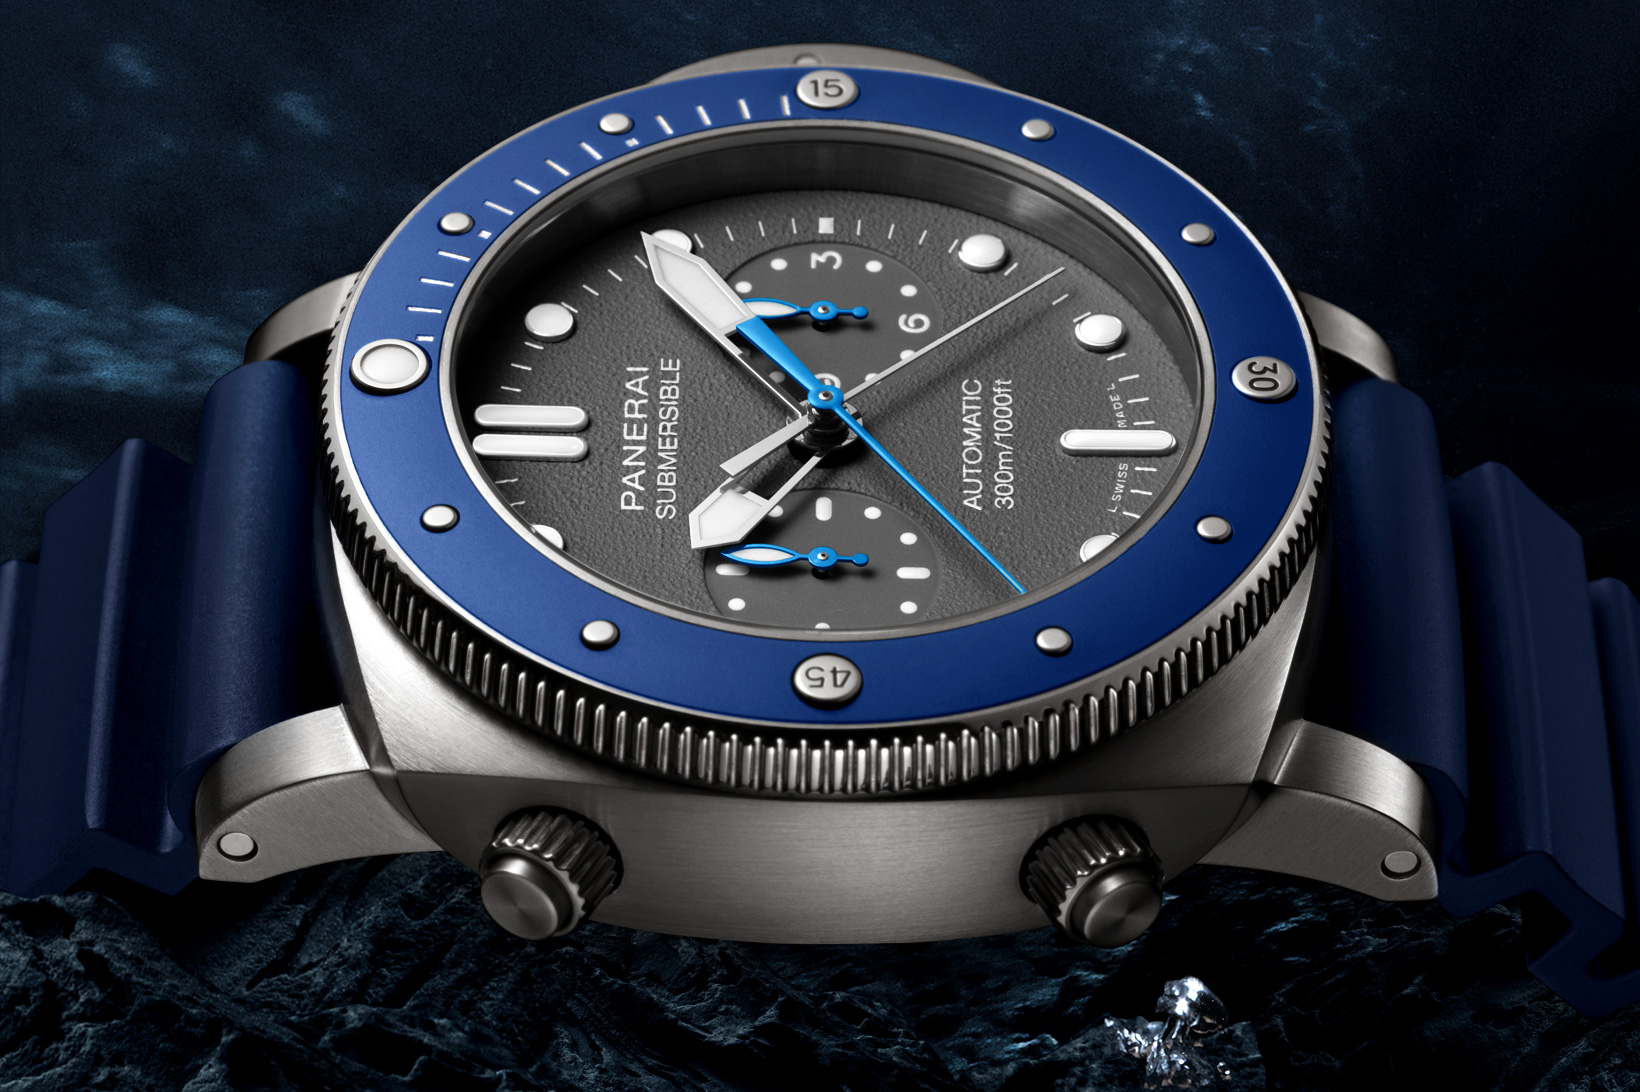 Panerai Luminor Submersible 1950 Chrono Guillaume Néry Edition PAM982 1